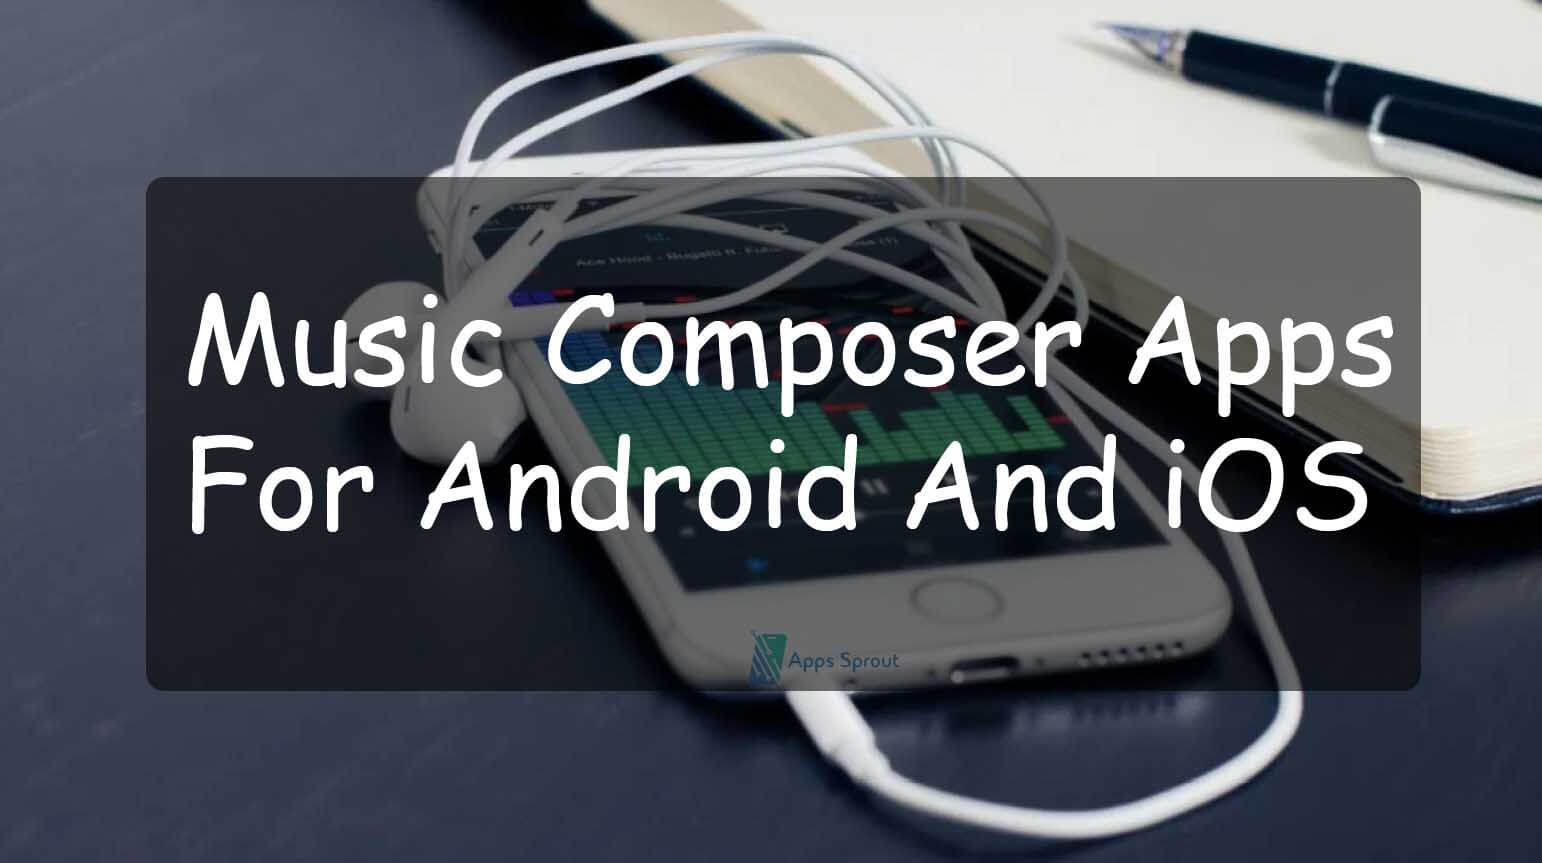 Music Composer Apps